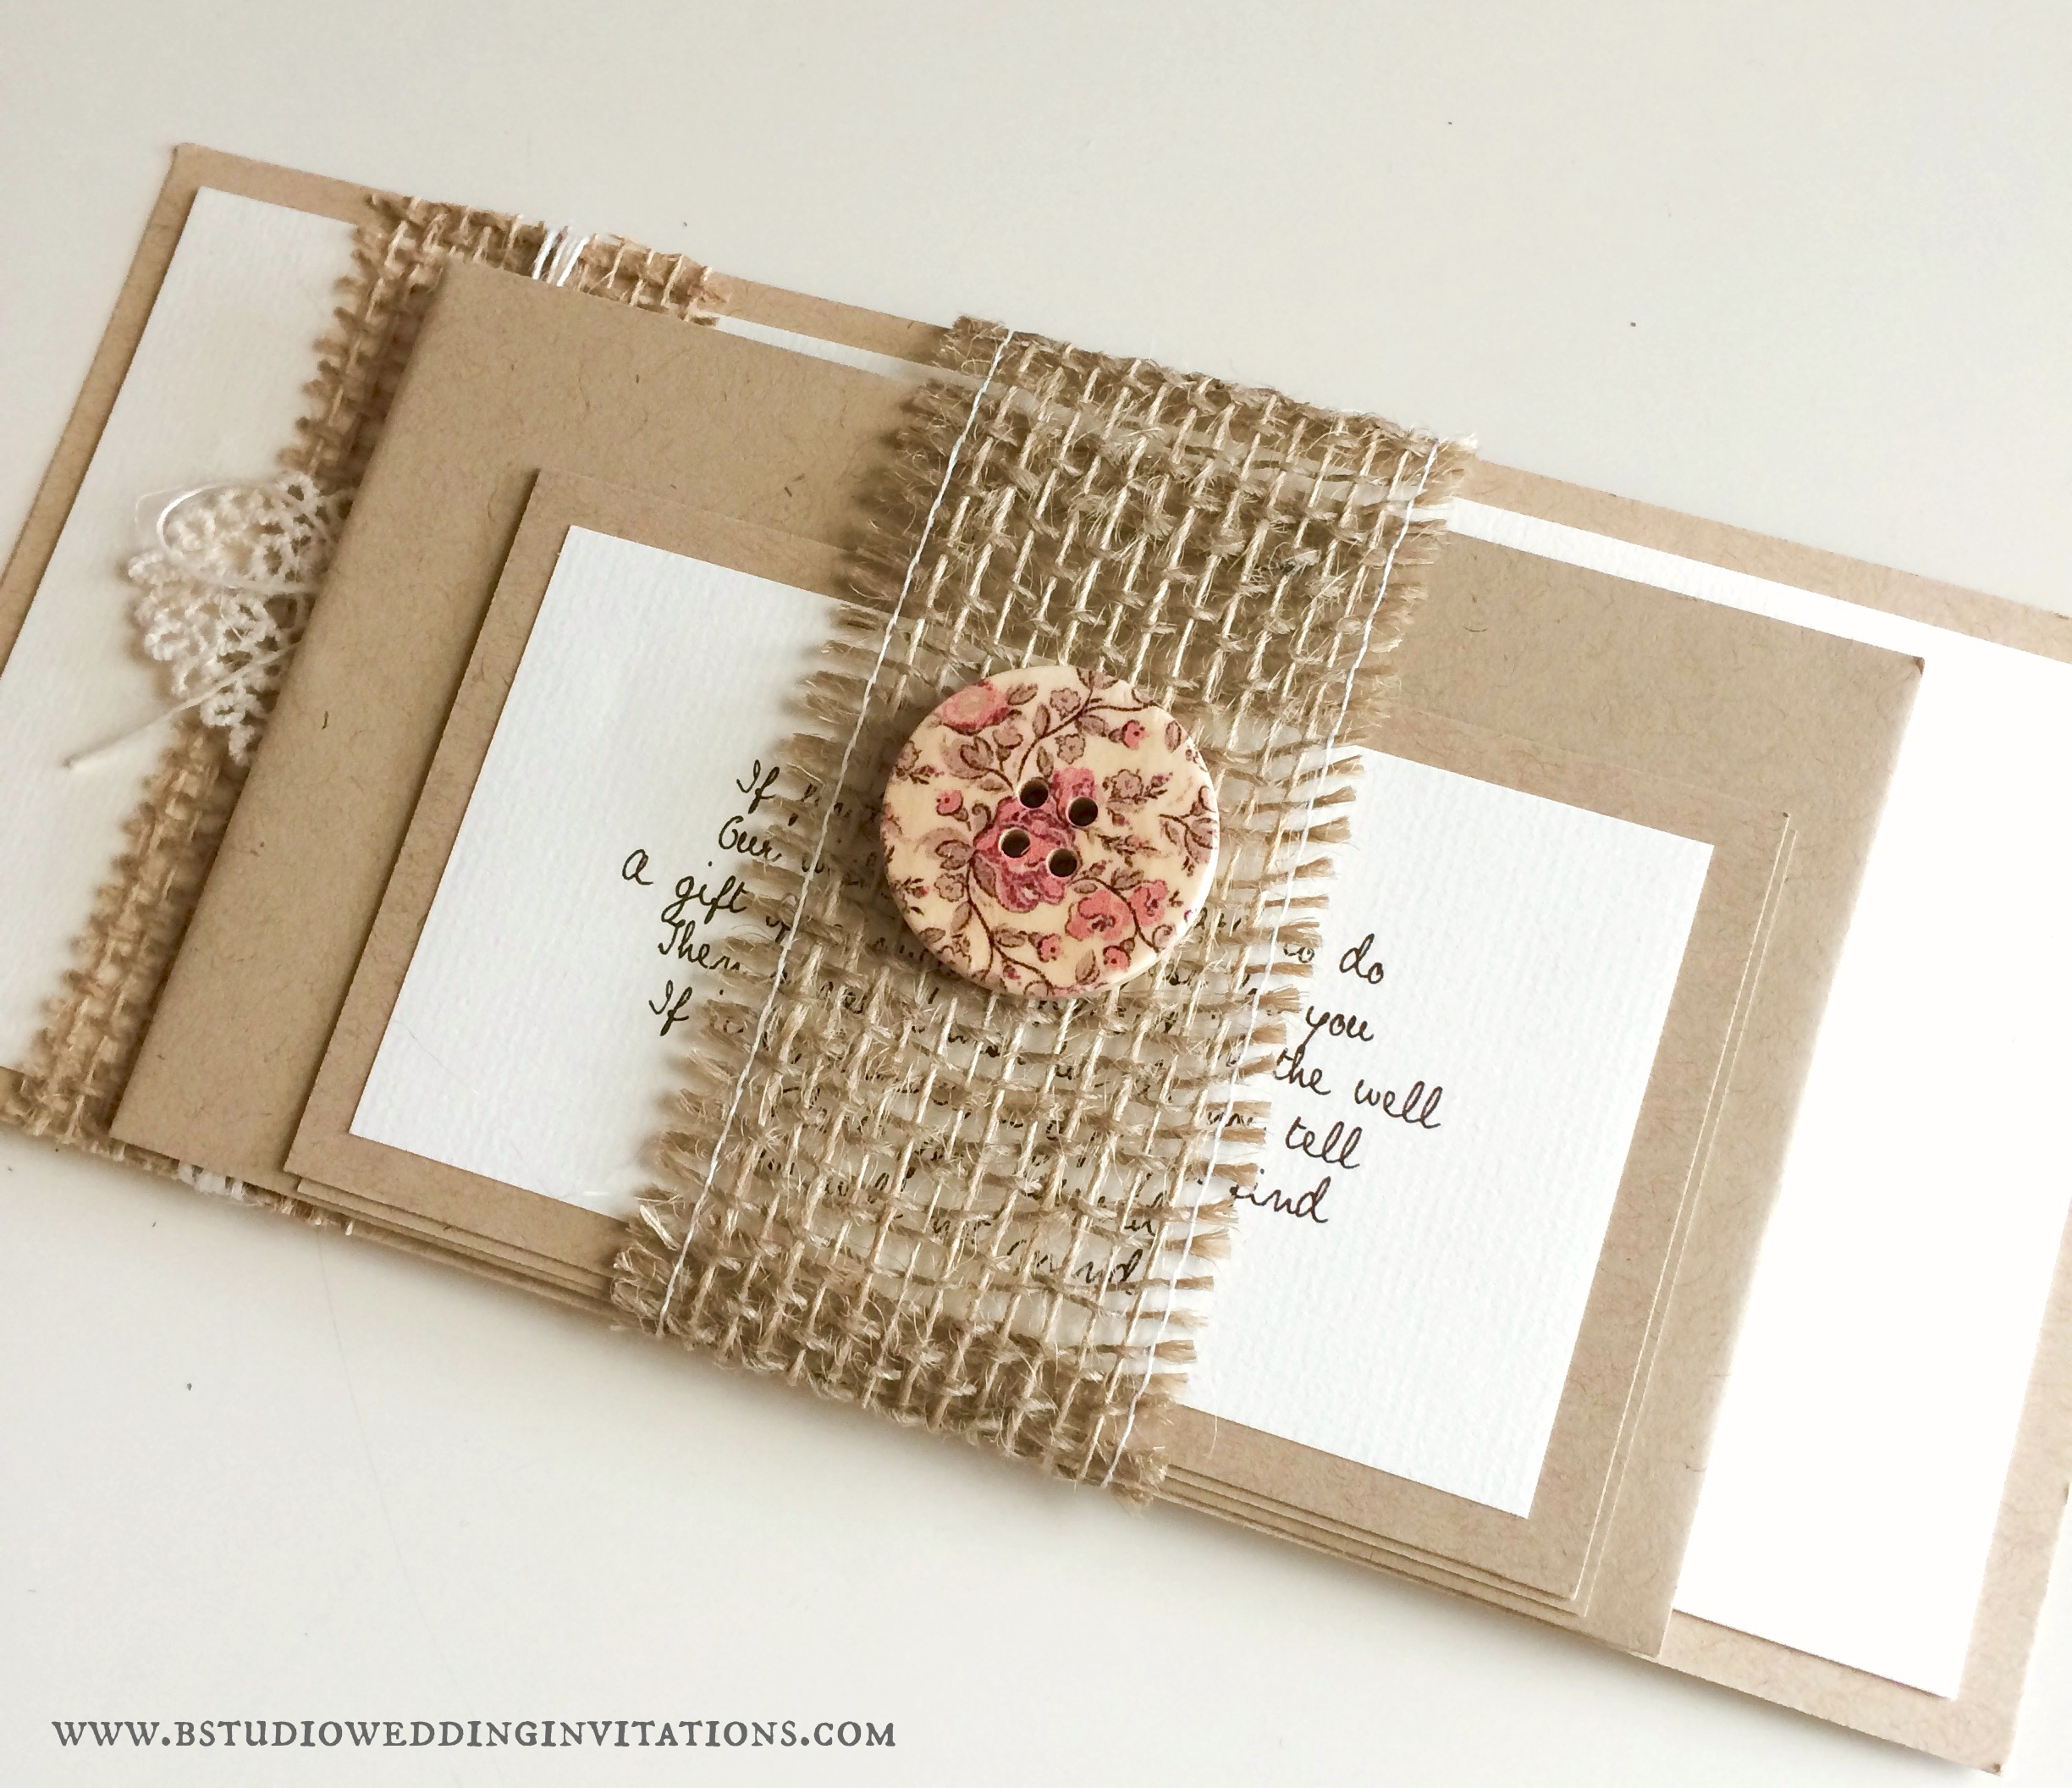 invitation – B Studio Wedding Invitations - Style Blog